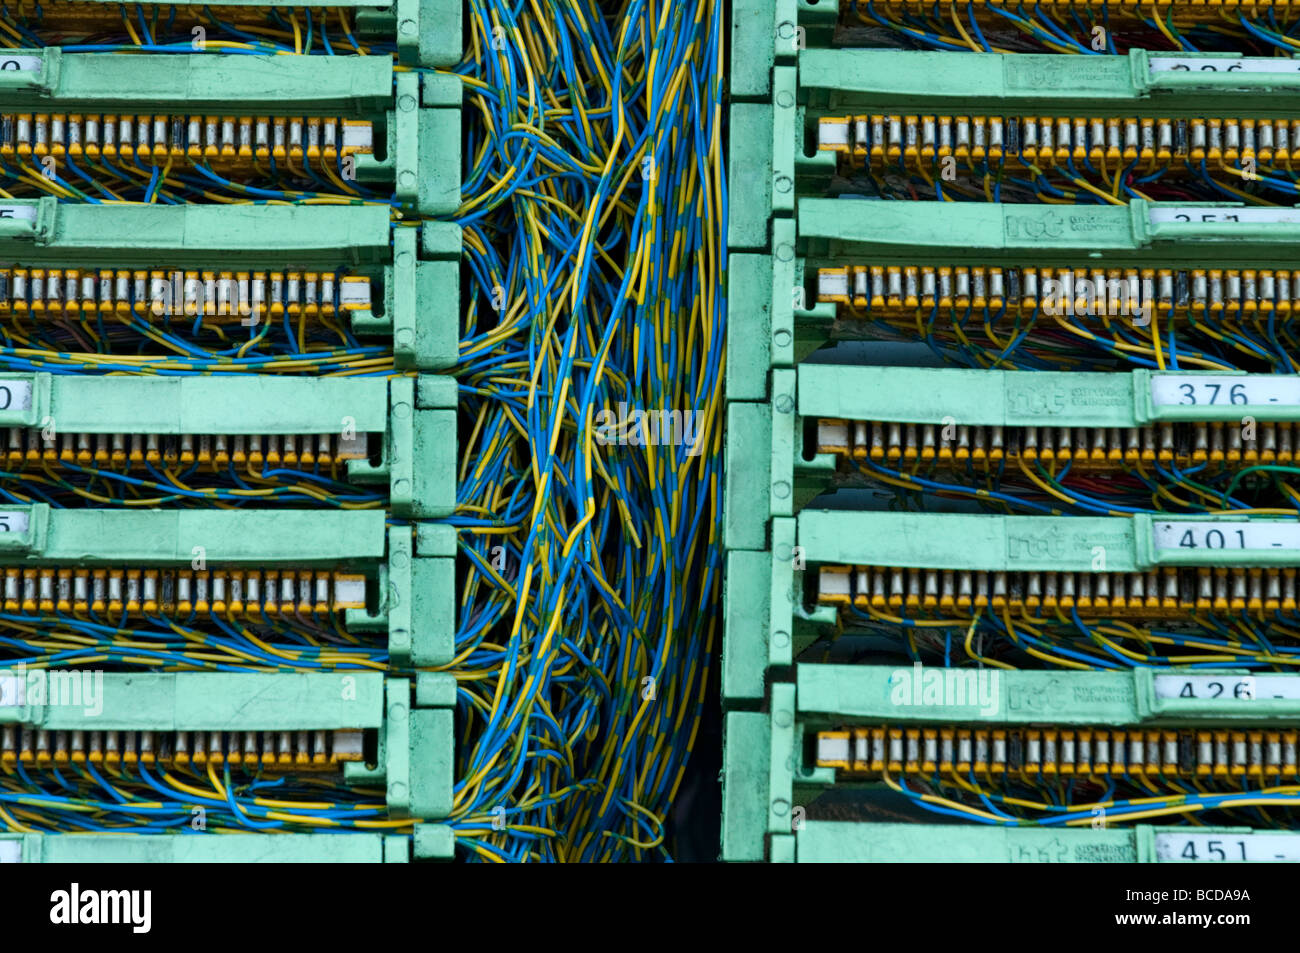 Tangle of telecommunications wires inside phone junction box, UK - Stock Image